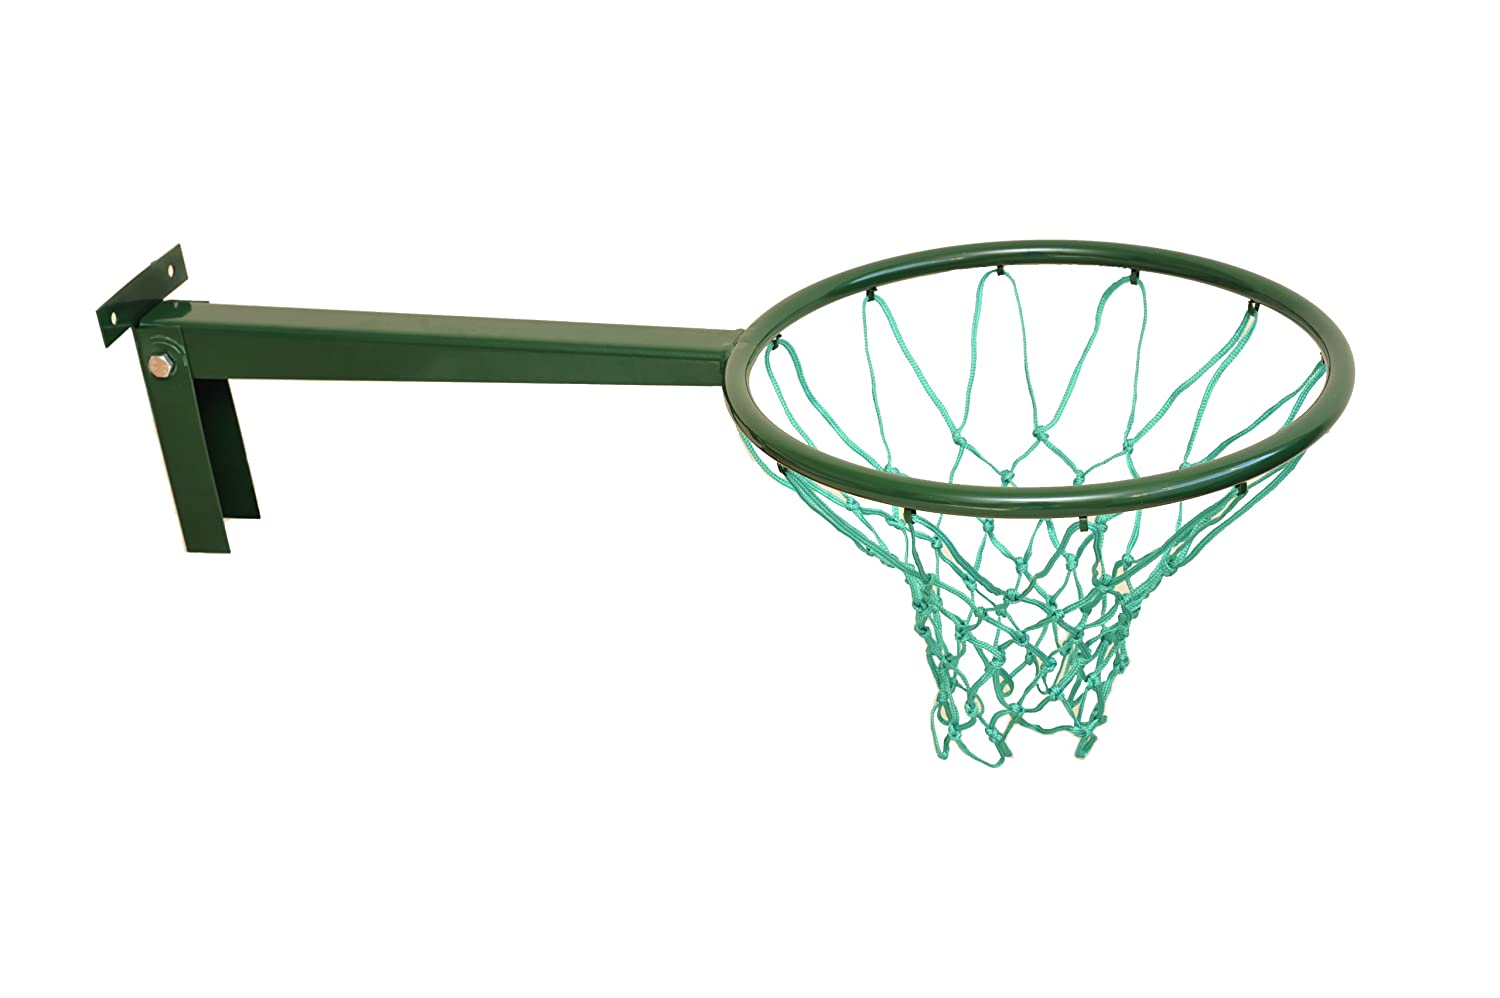 British Made Long Reach Removable Netball Ring with robust bracket and top quality 3mm twine. Avonstar Trading Co. Ltd.